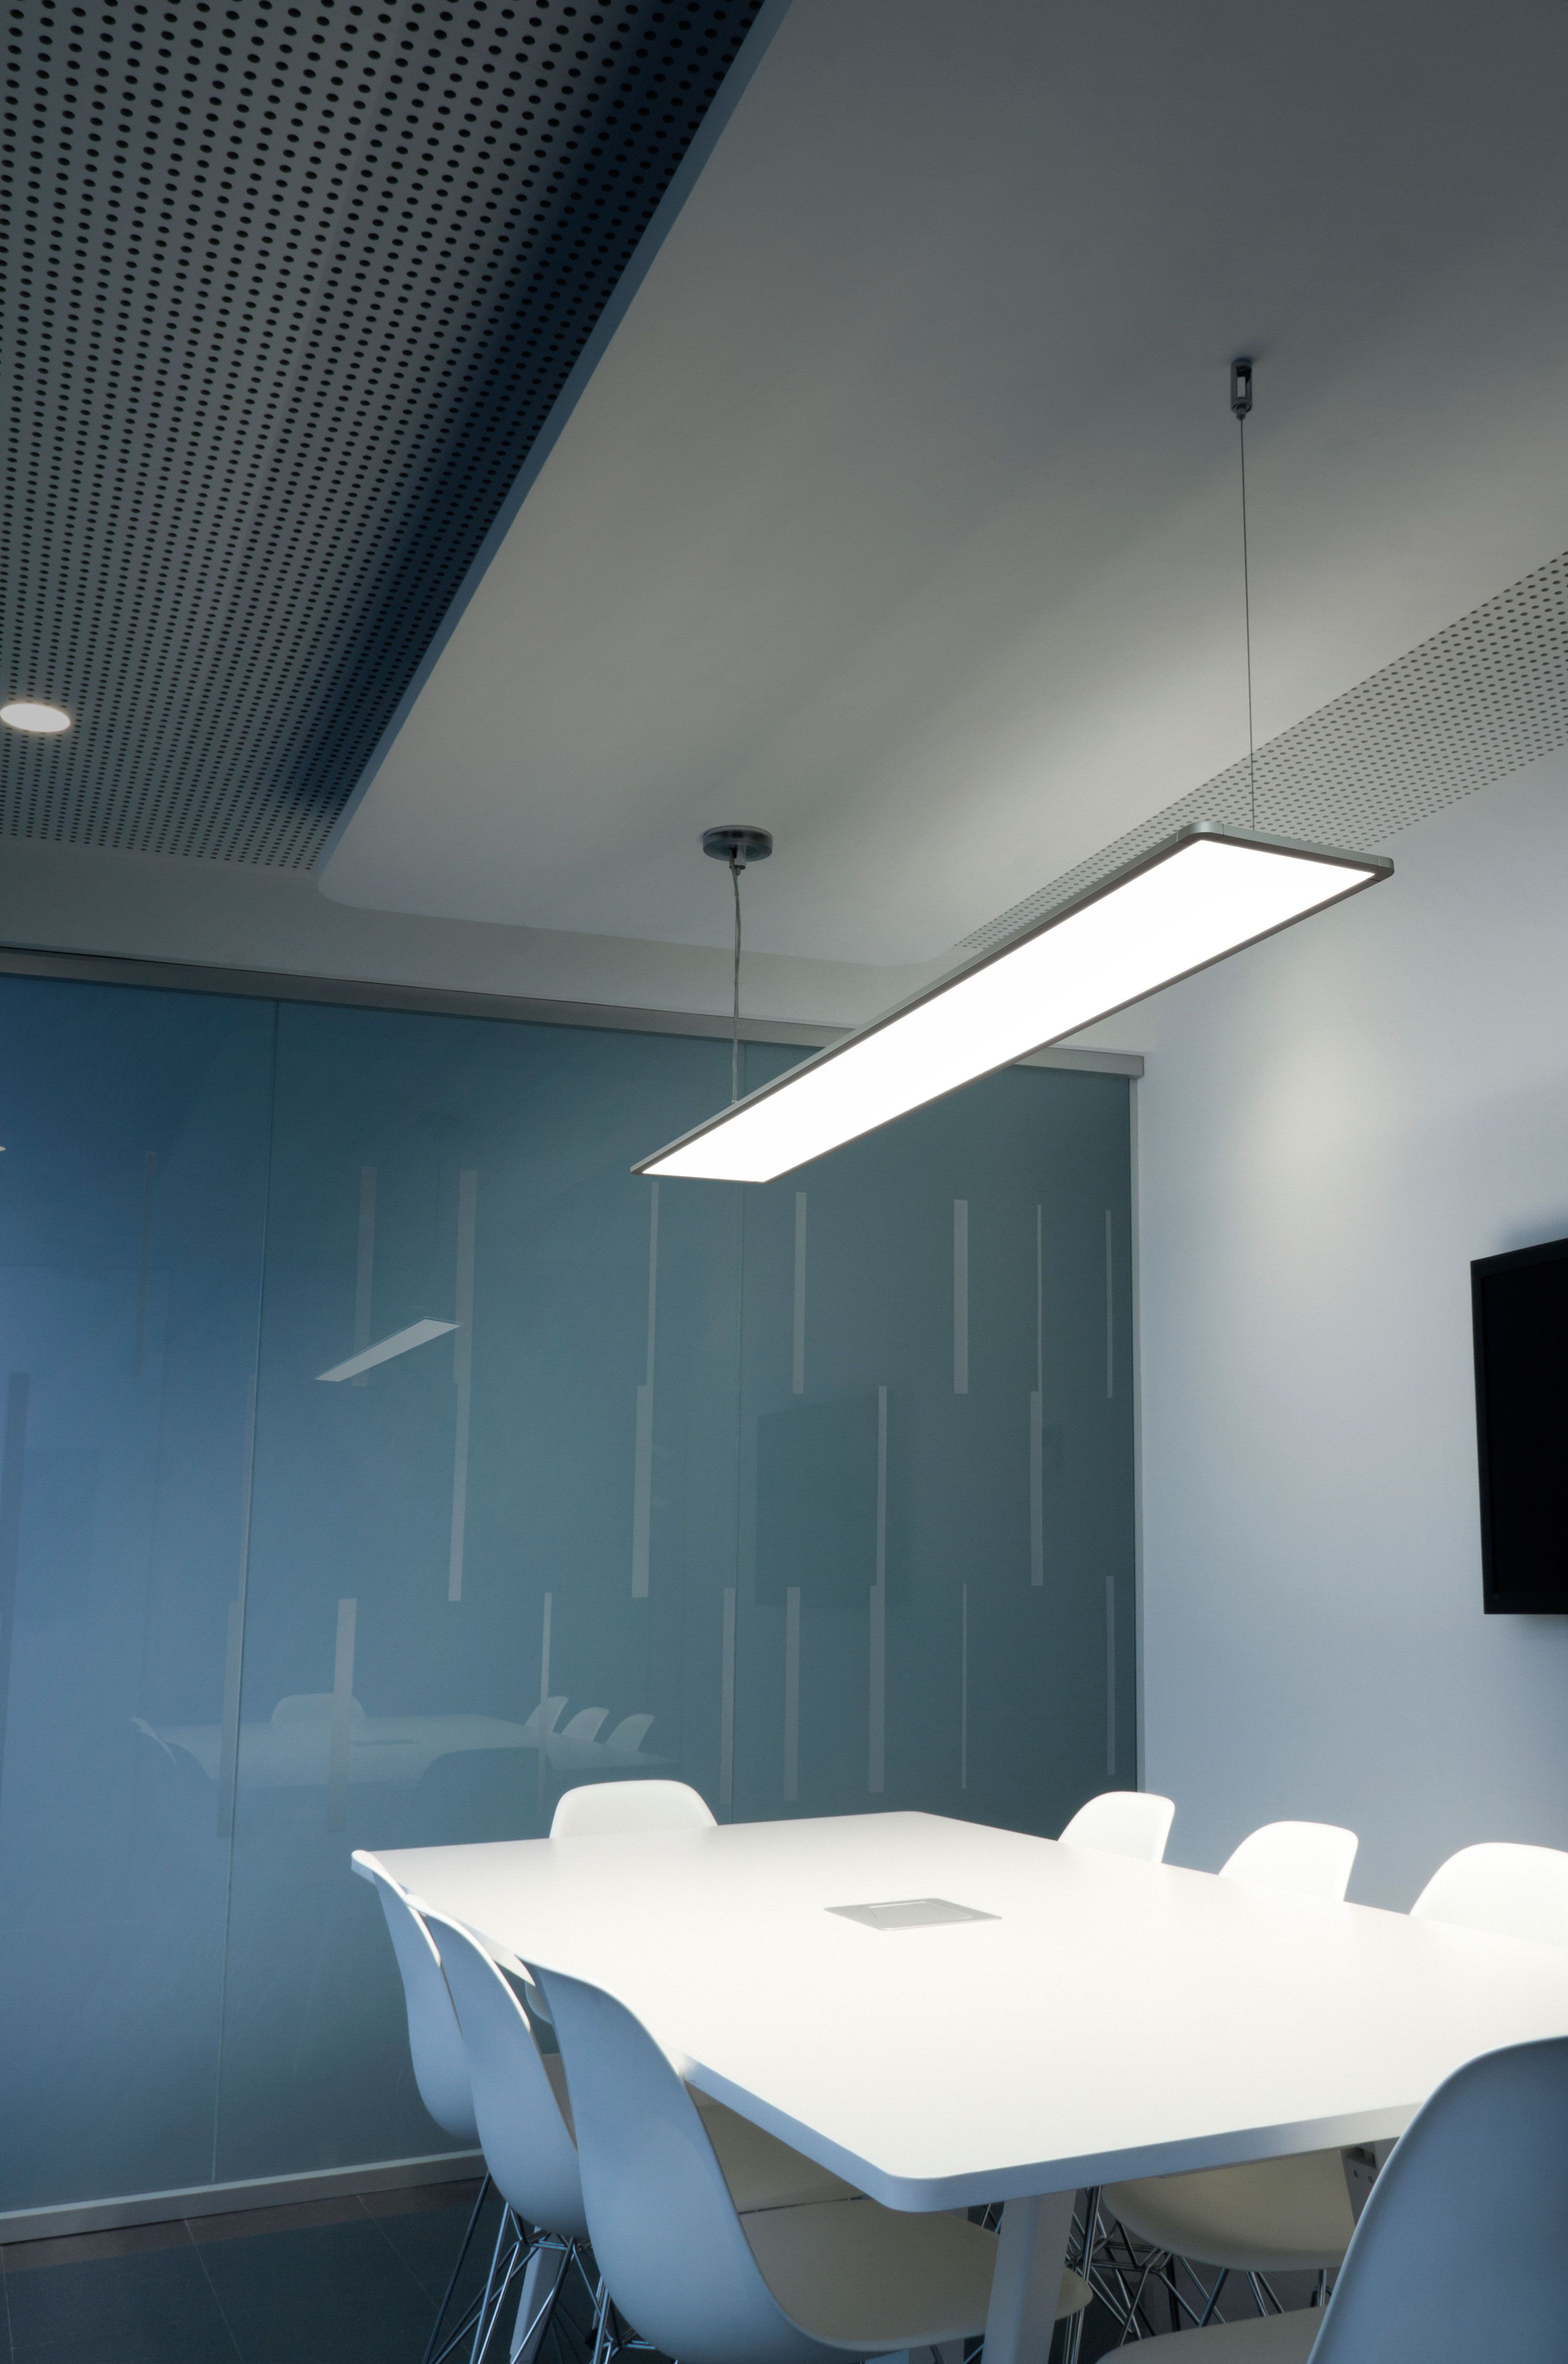 Super Flat Designed By Flos Architectural Office Lighting